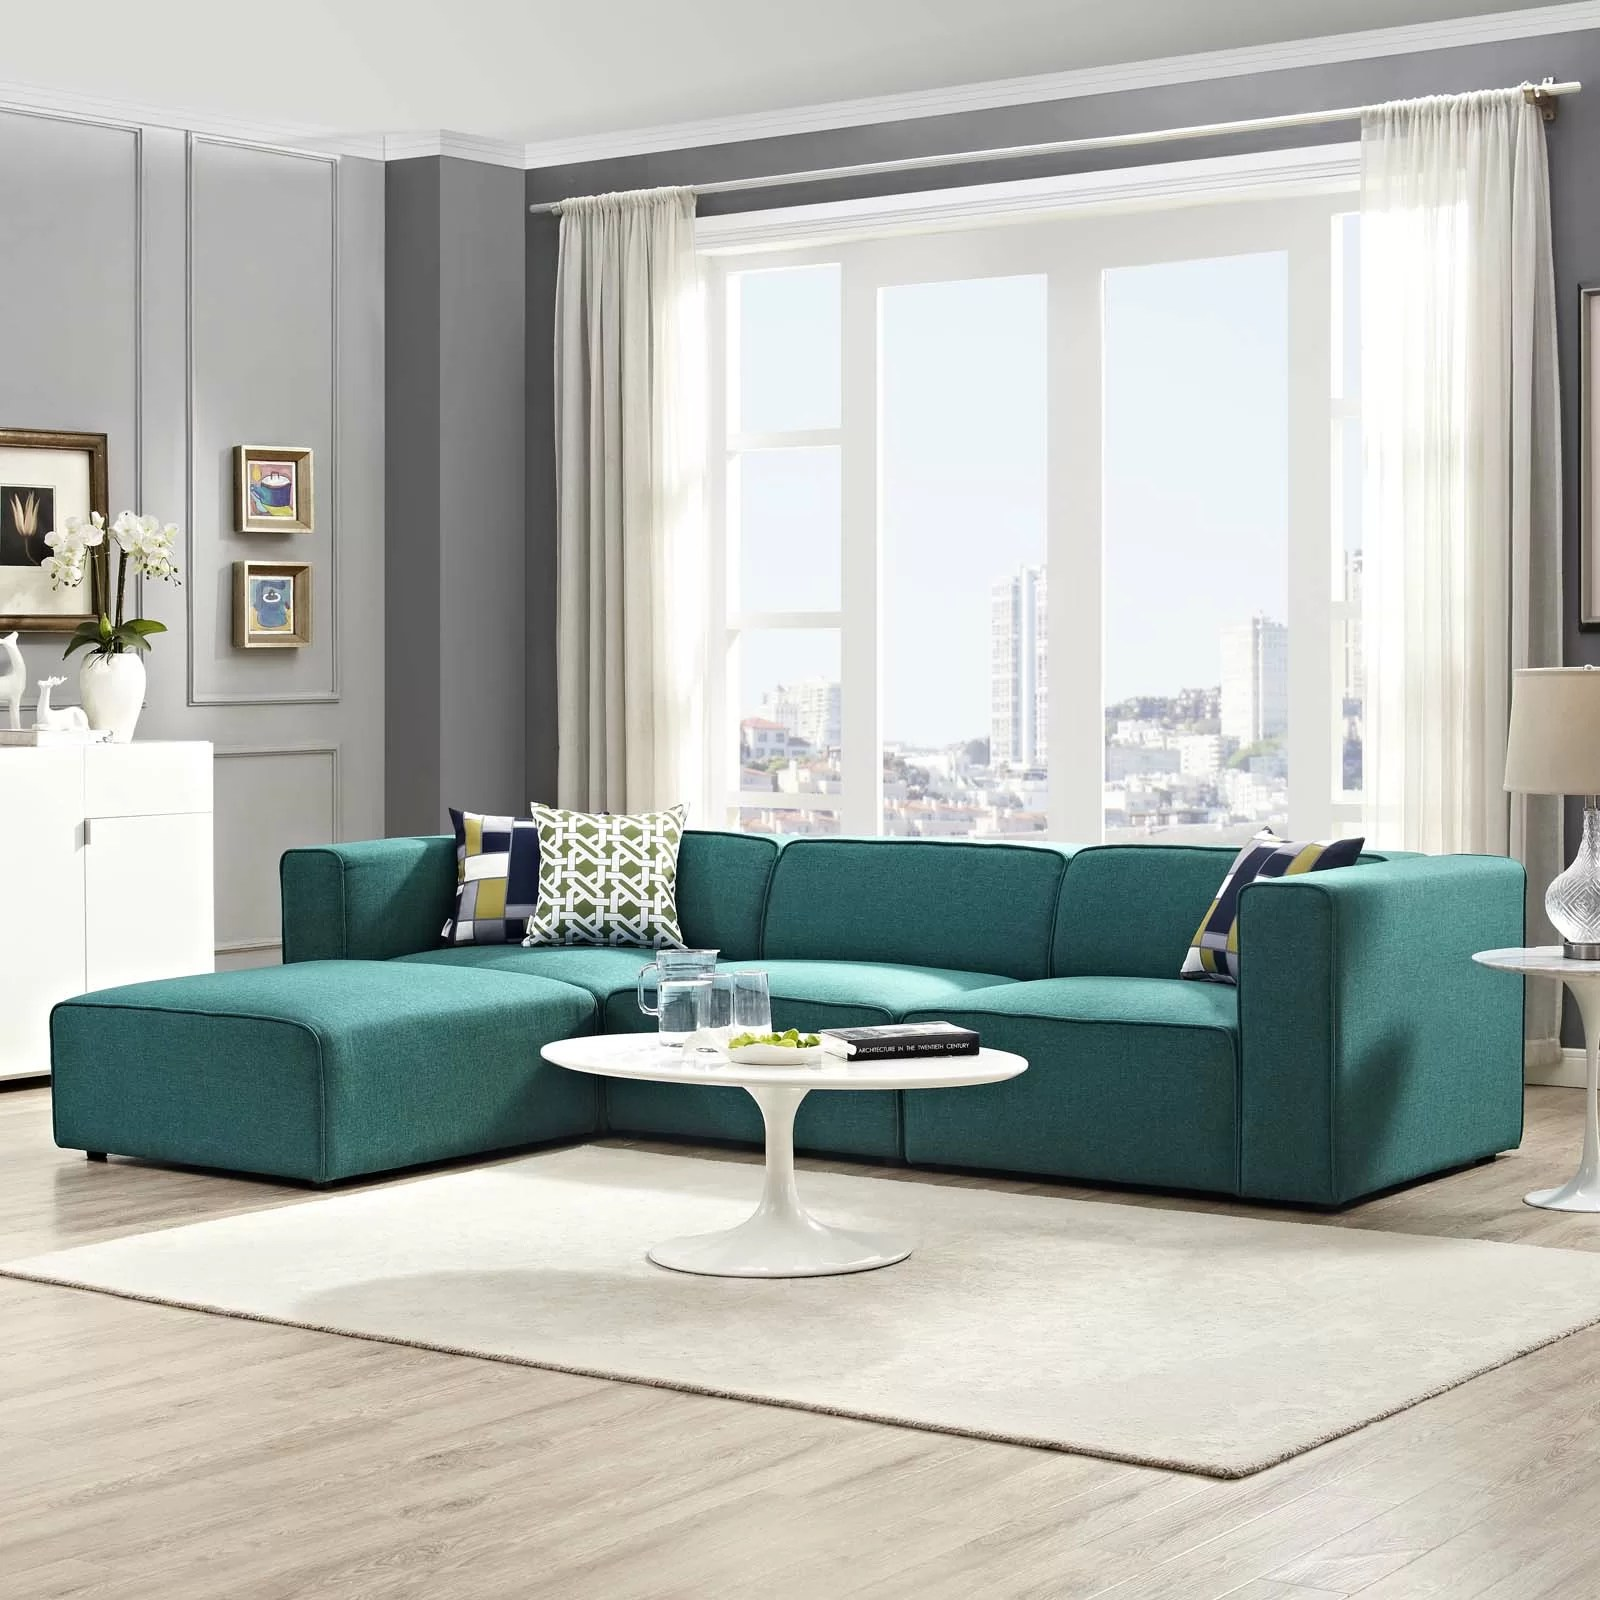 chairs designs for living room mixing furniture styles allmodern modular sectionals